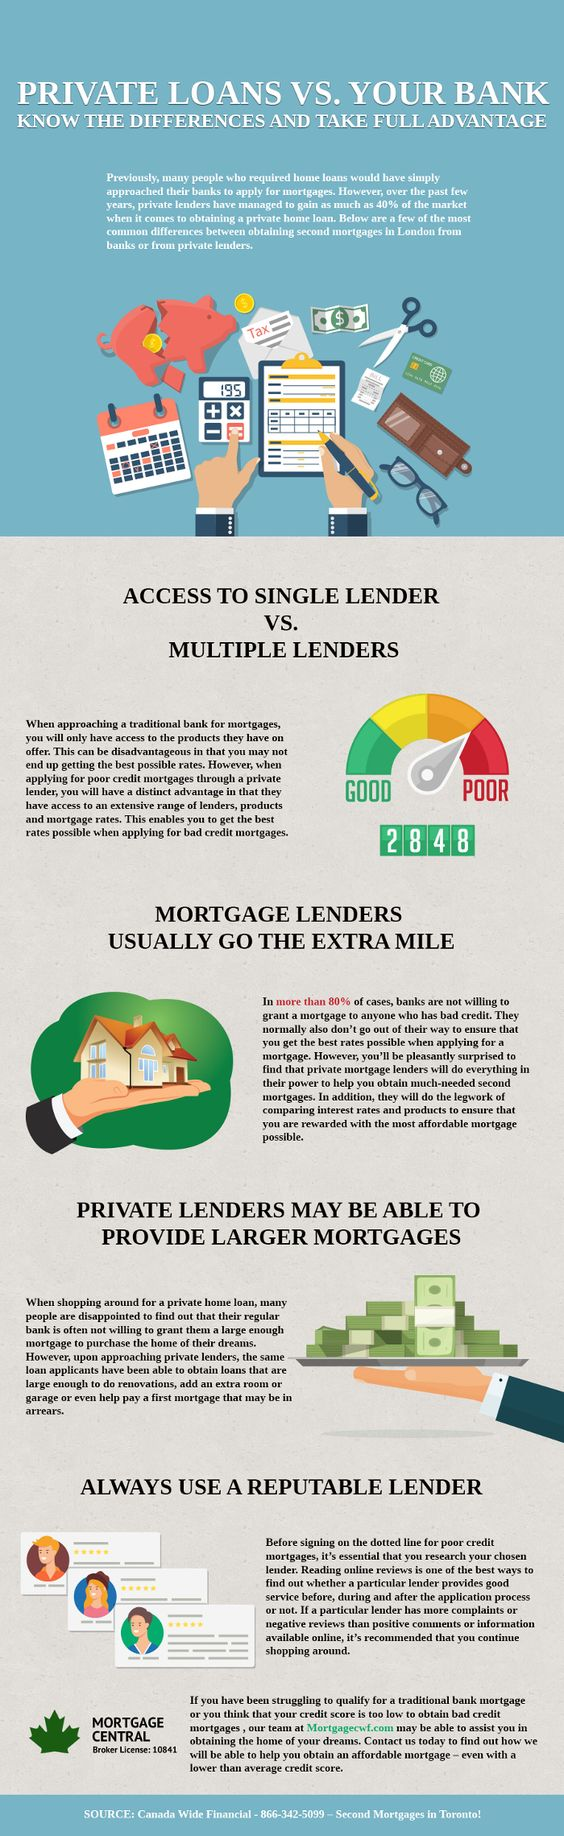 Private Loans vs. Your Bank - Know the Differences and Take Full Advantage - Infographic